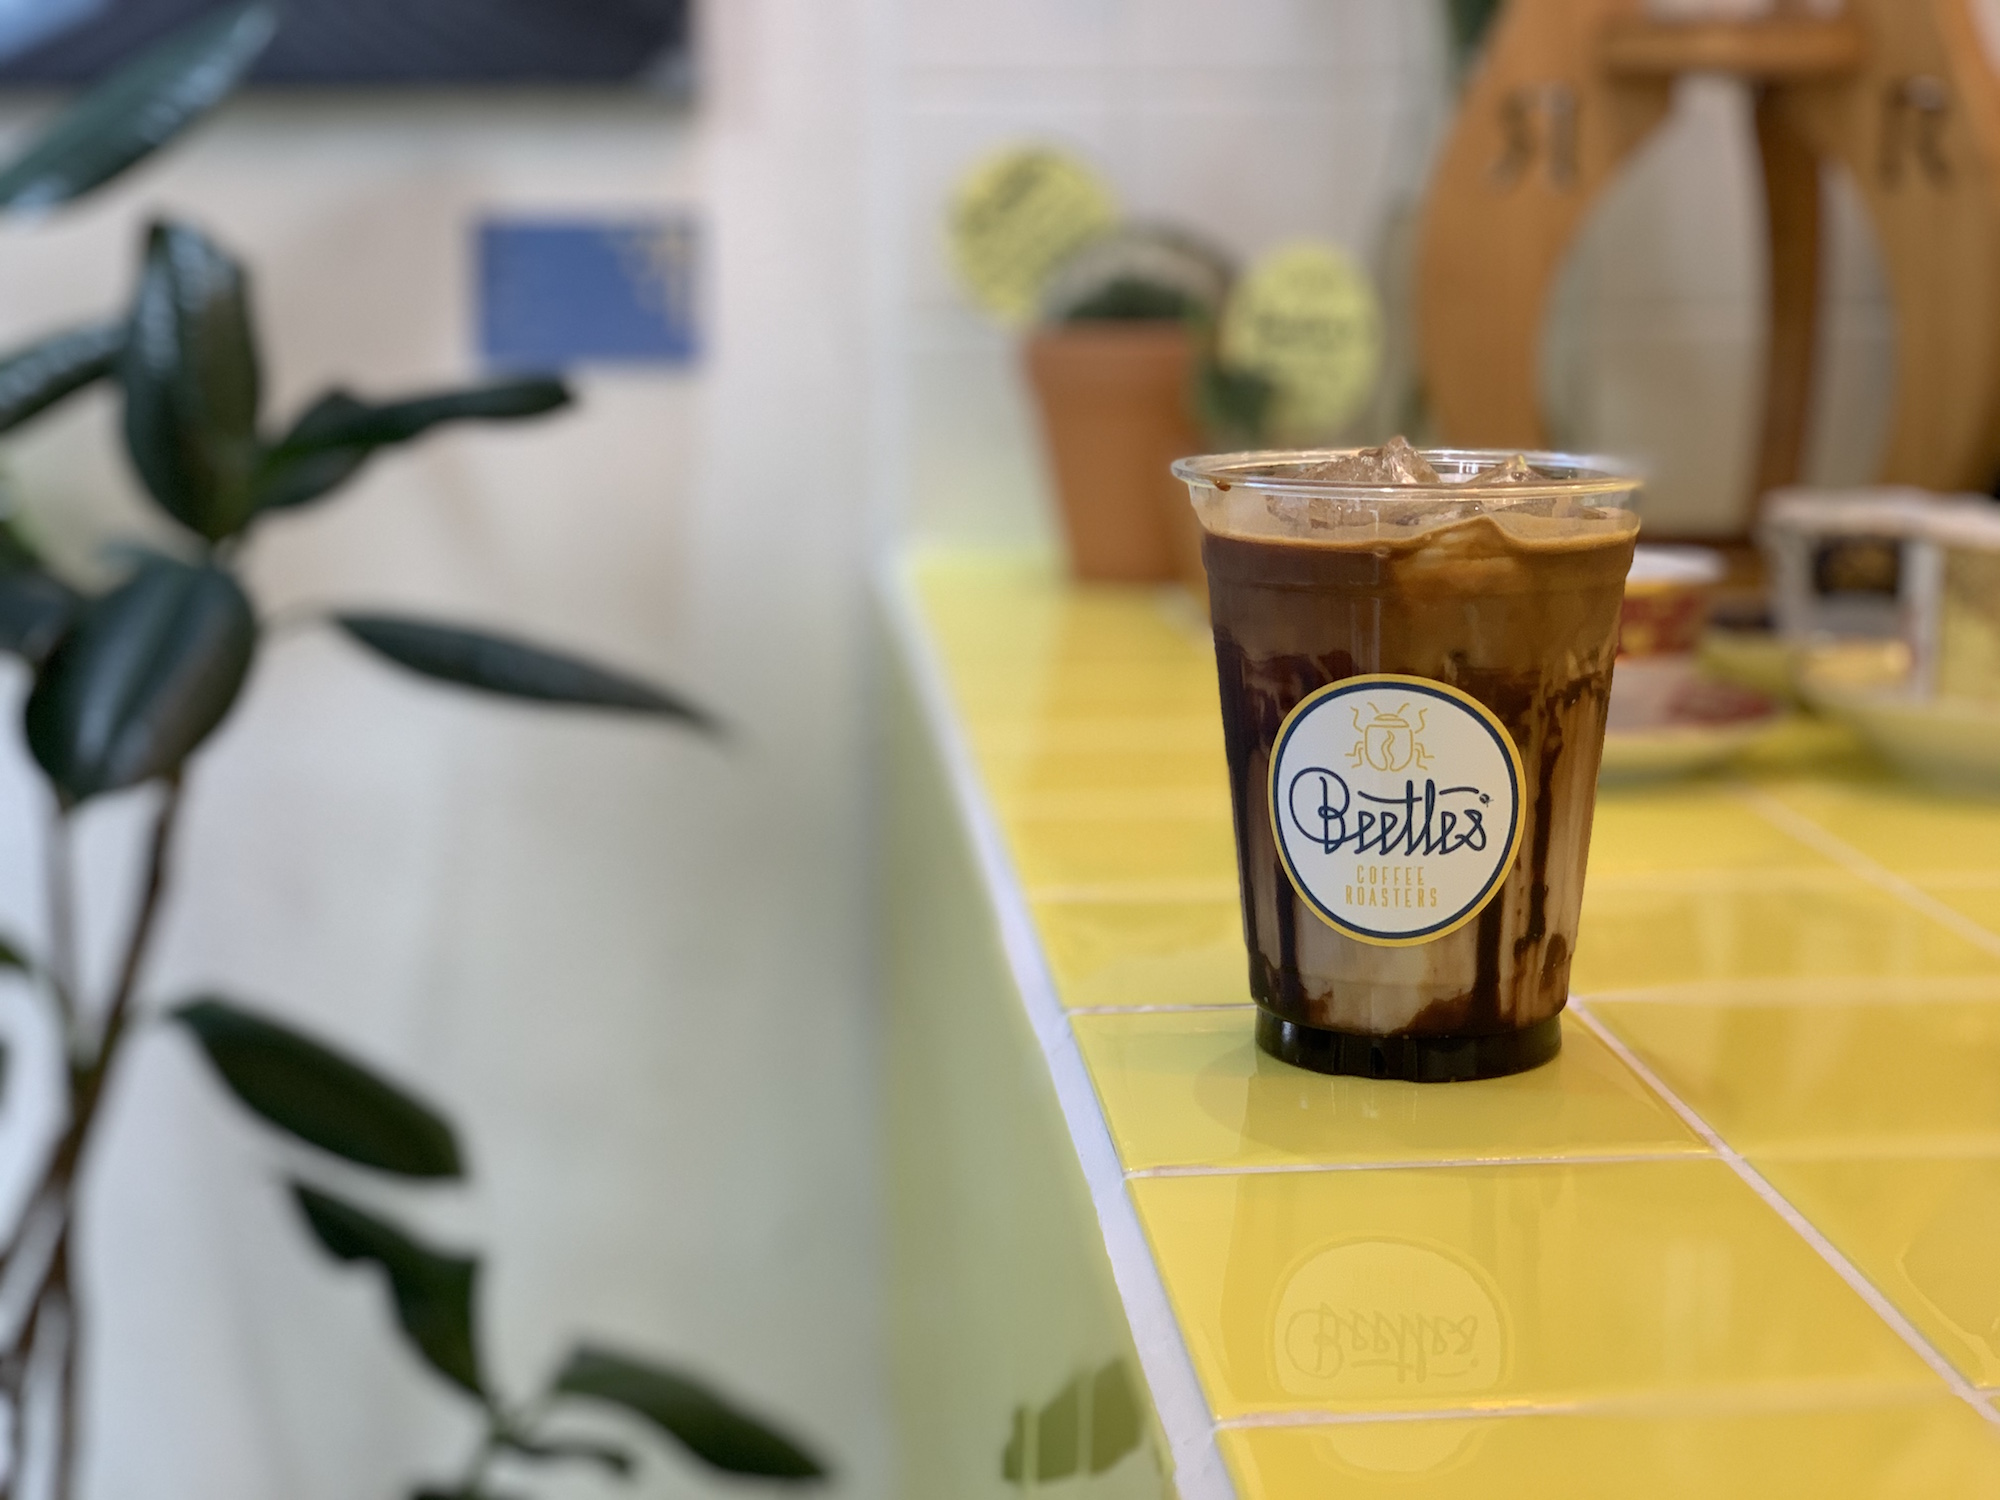 Beetles Cafe Coffee Latte on the Right Side Macau Lifestyle